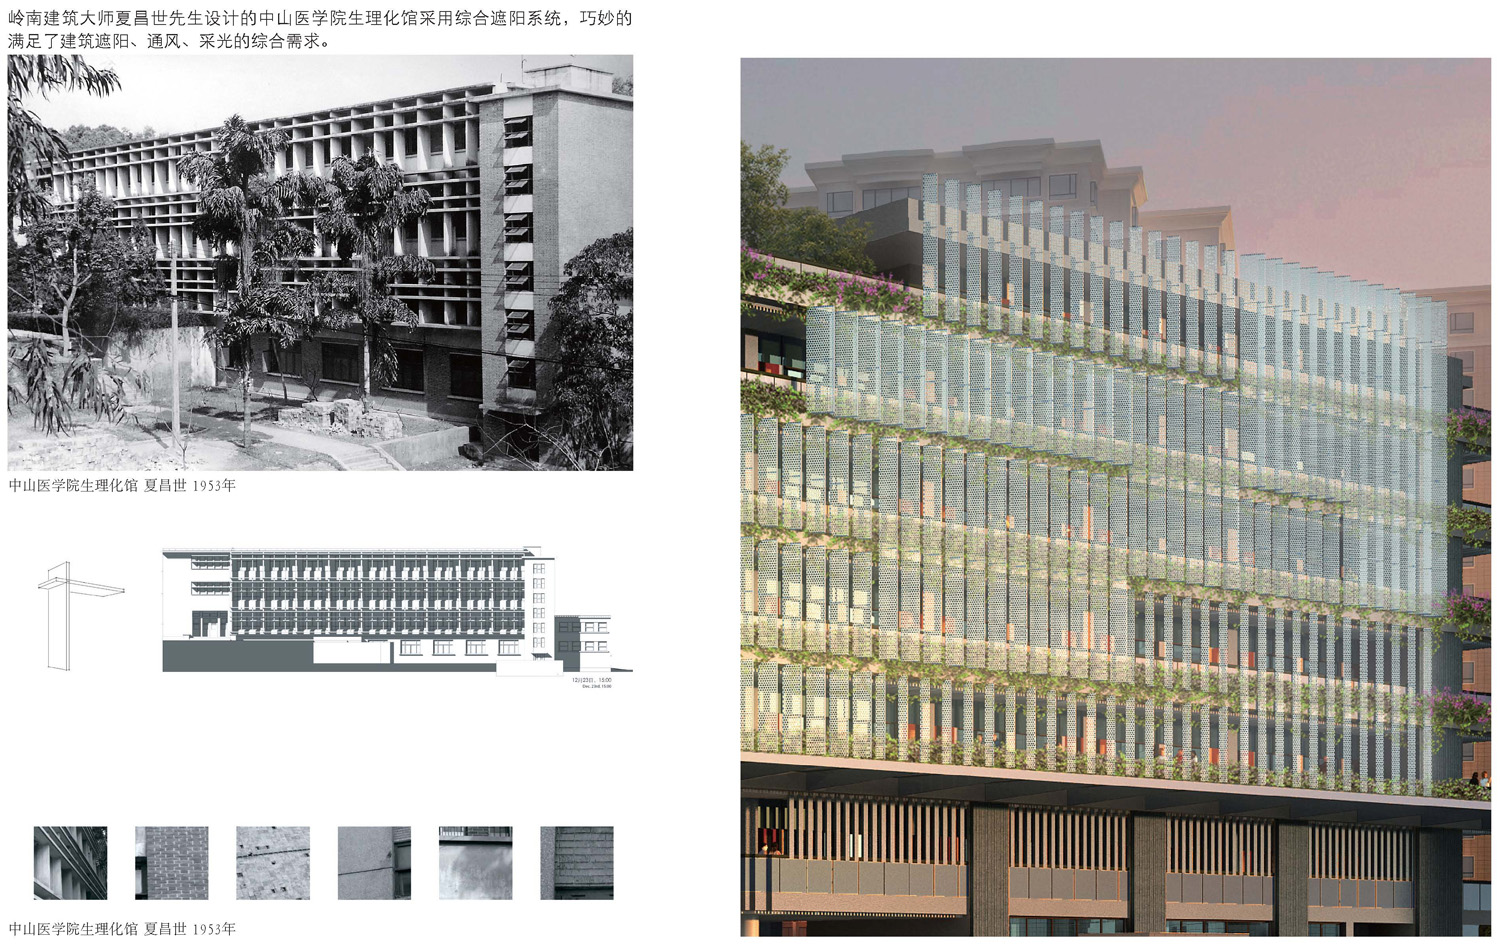 learning from Hsia Changshi's shading systems